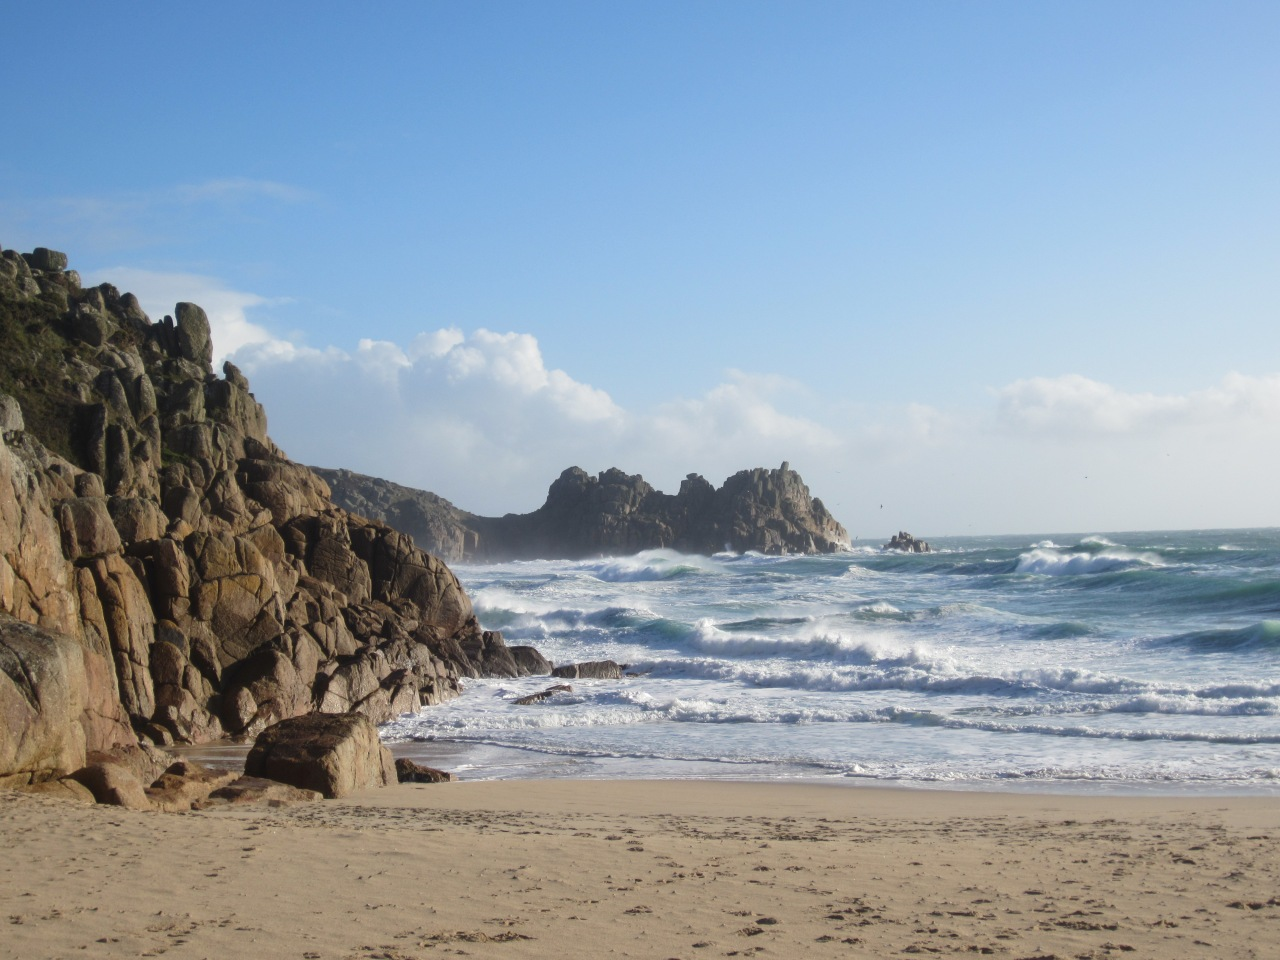 Porthcurno: the beach that helped winWWII